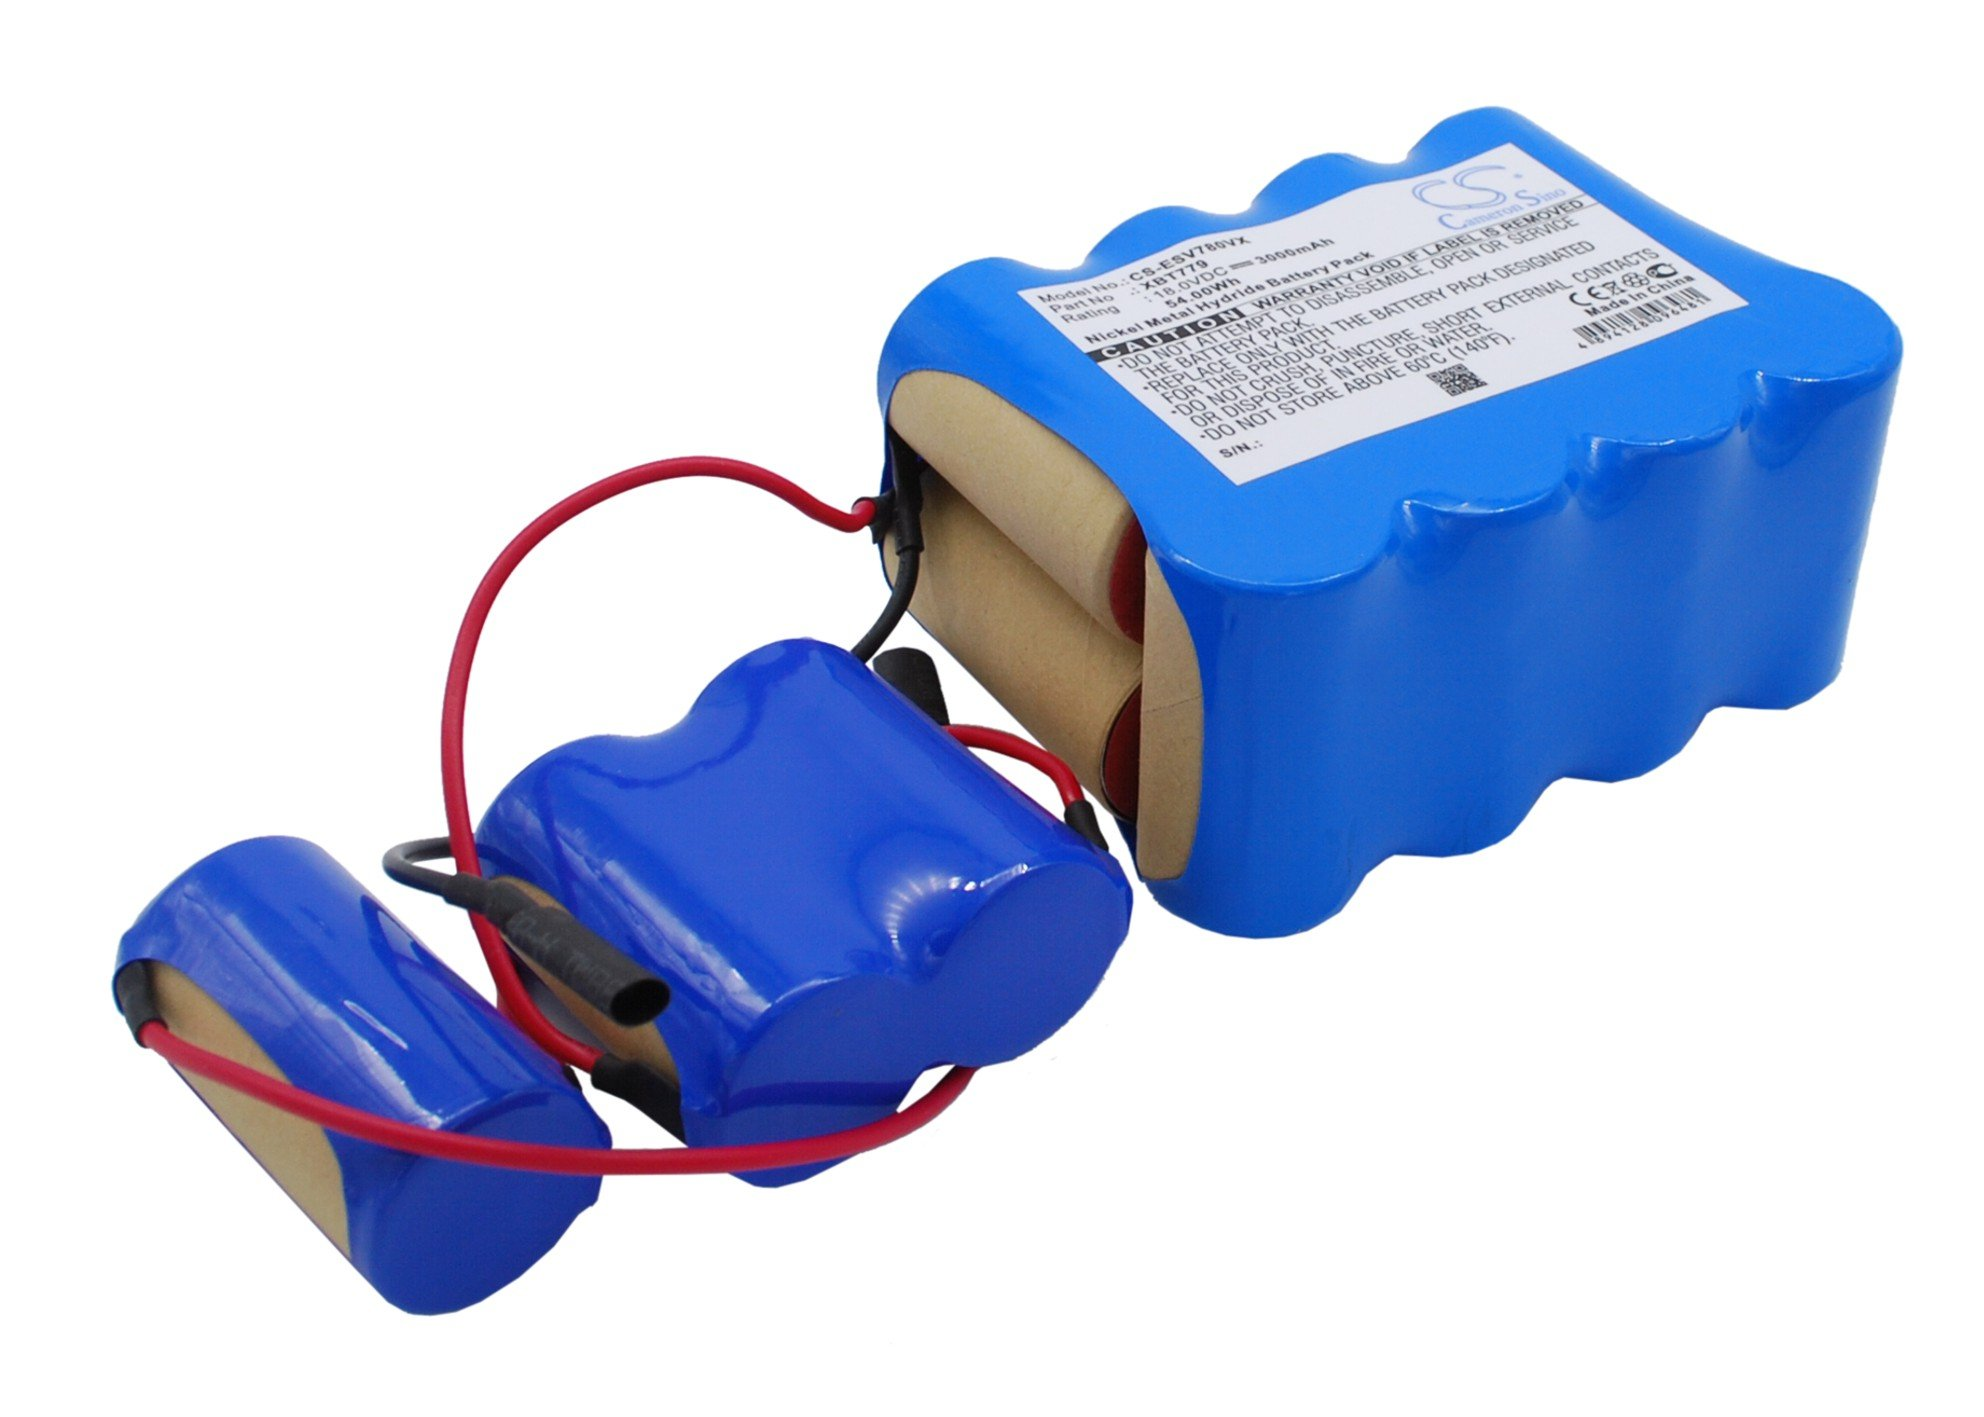 GAXI Battery Replacement for Euro Pro CEN 540 Comapatible with Euro Pro CEN540 CEN546, CEN550 CEN640 CEN646, CR120, CR130, Vacuum Cleaner Battery by GAXI